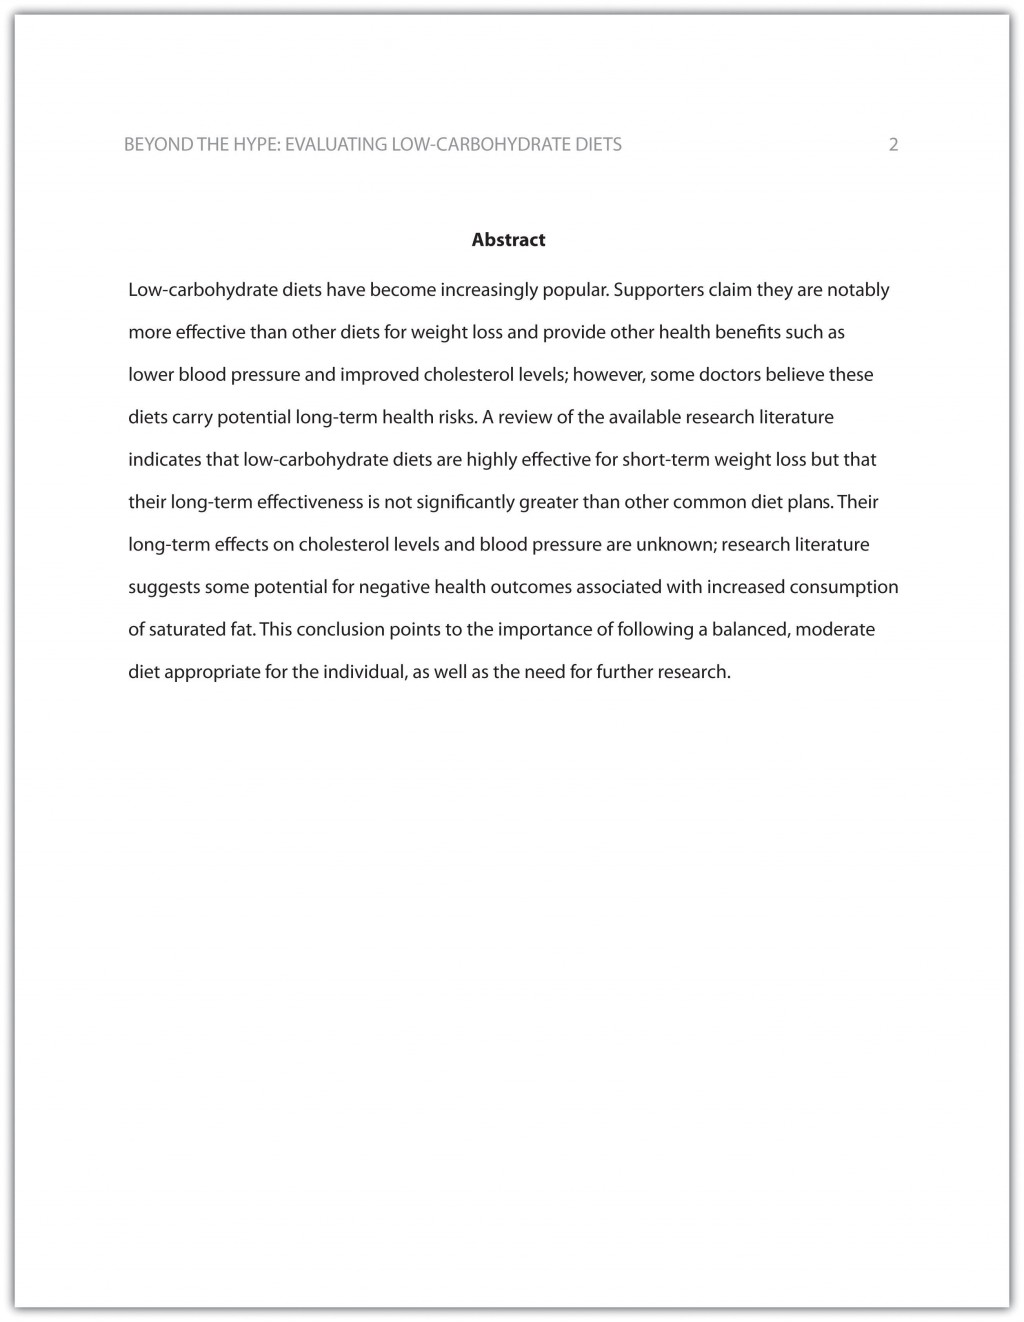 015 Biology Research Paper Outline Impressive How To Write A Large